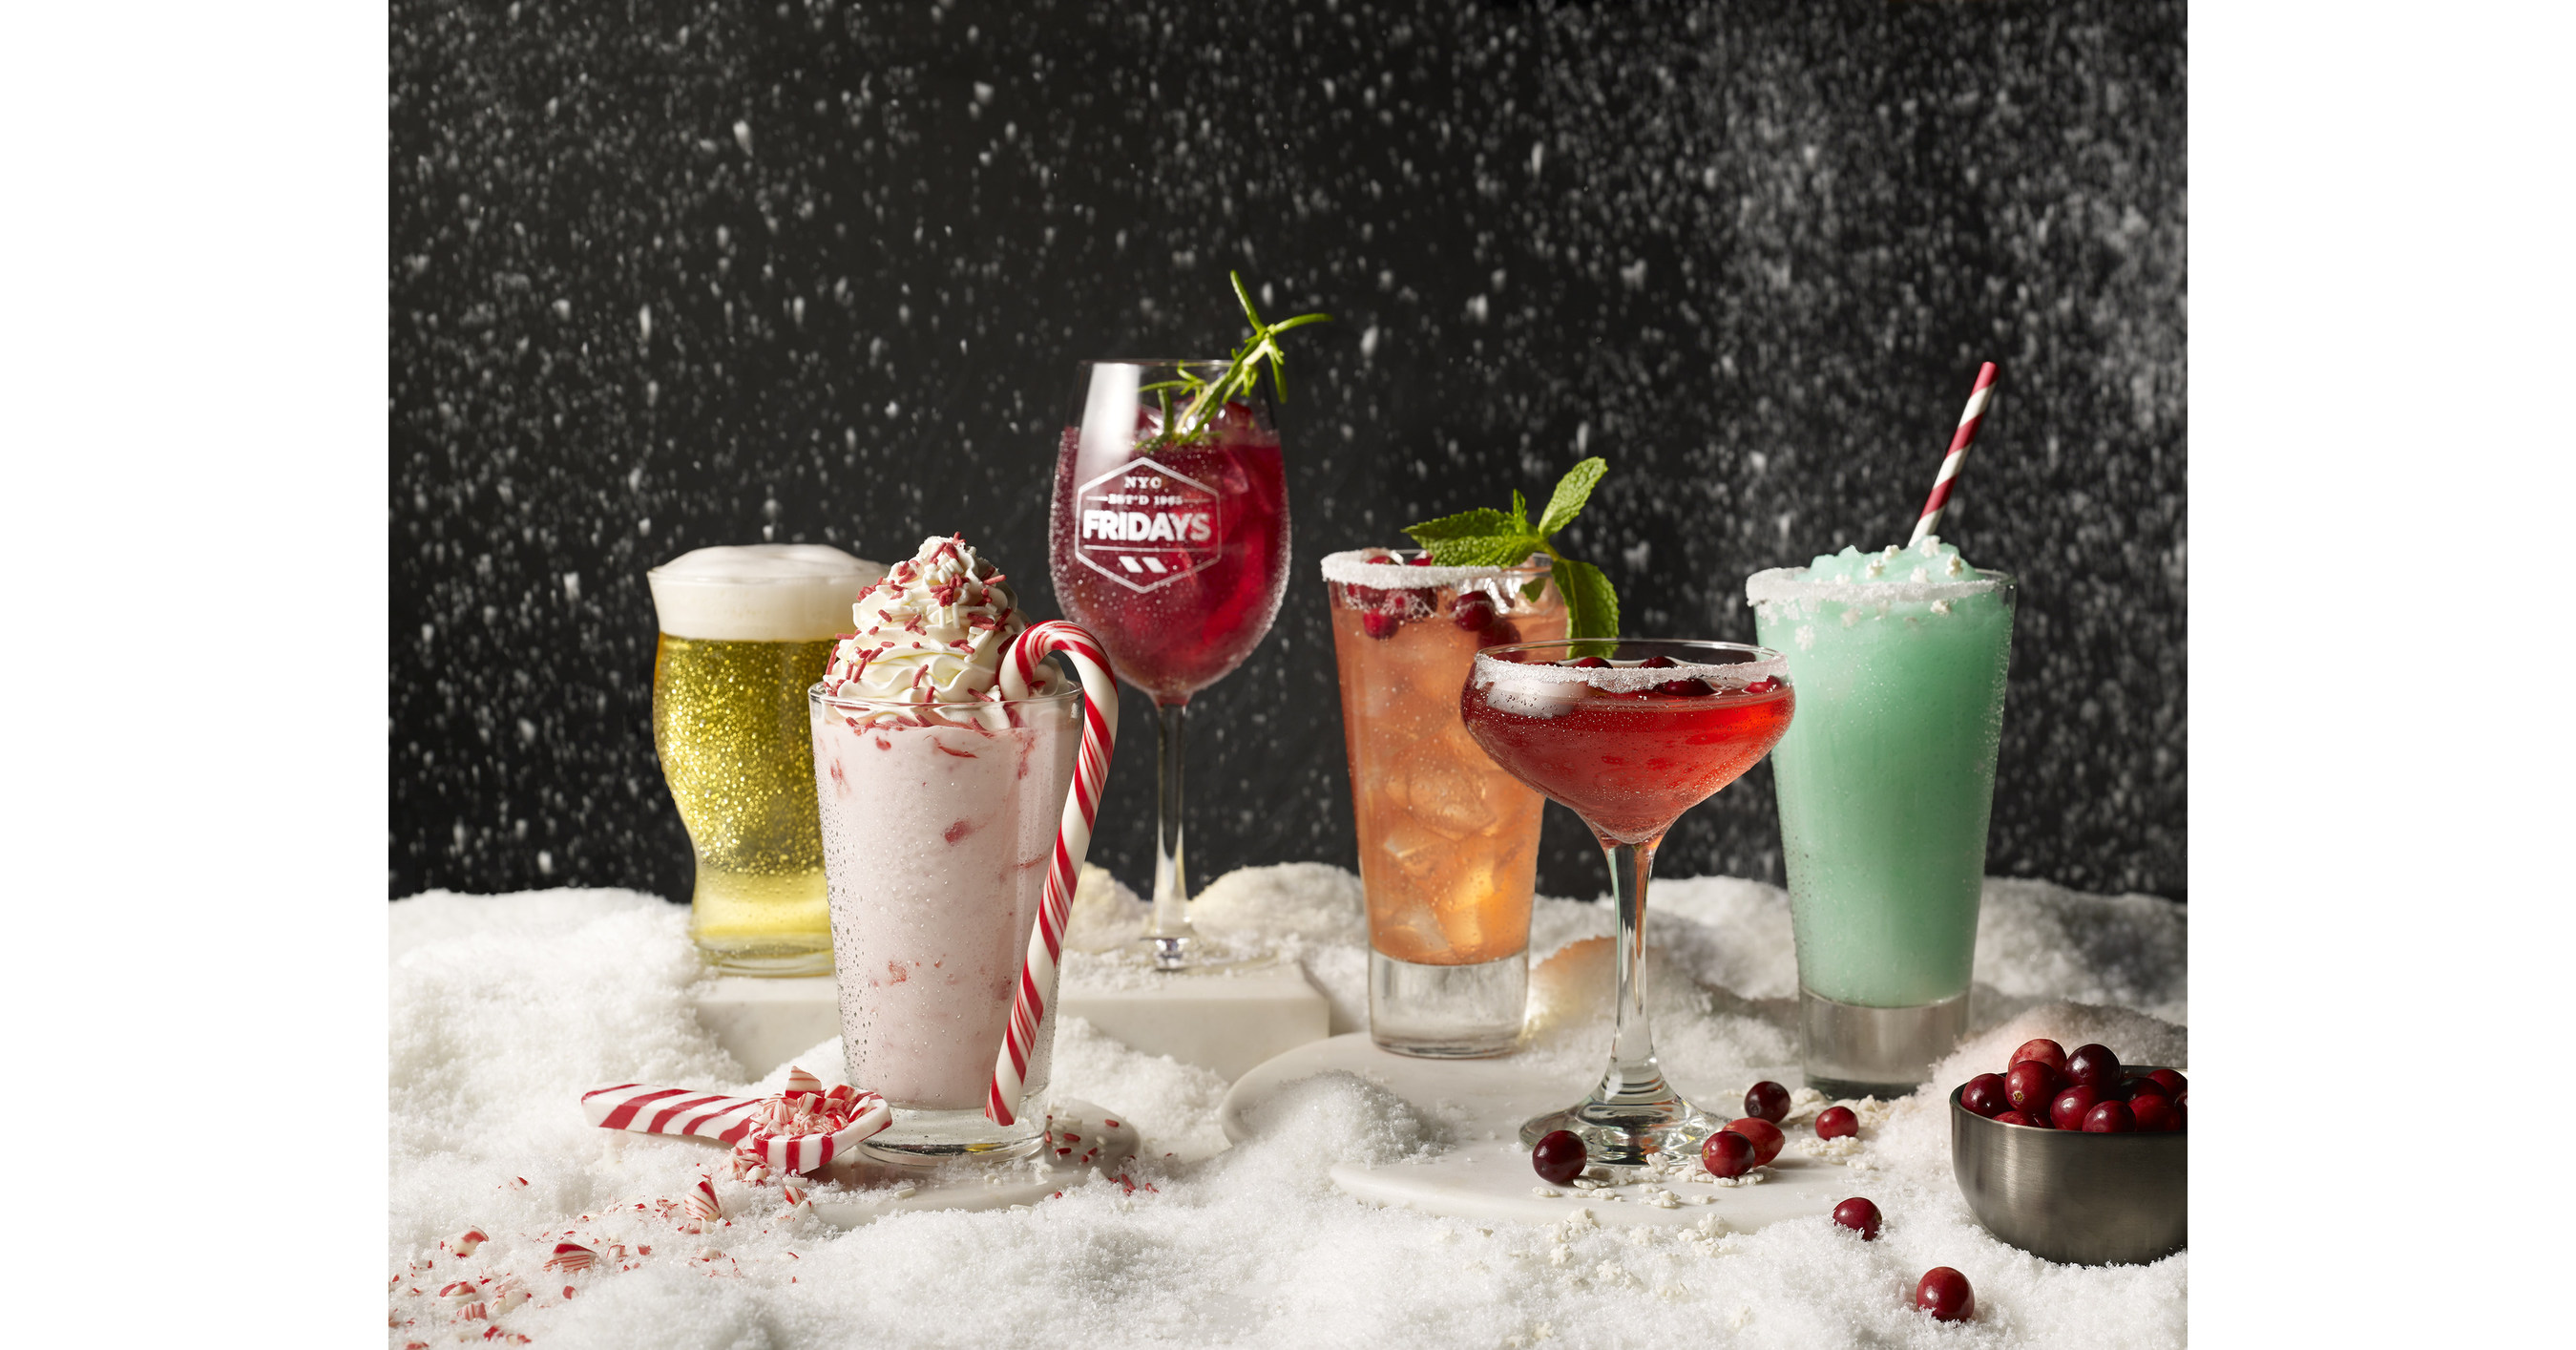 Tgi Fridays? And Delish Shake Up Social Media And The Bar Scene With Holiday Cocktail Menu photo